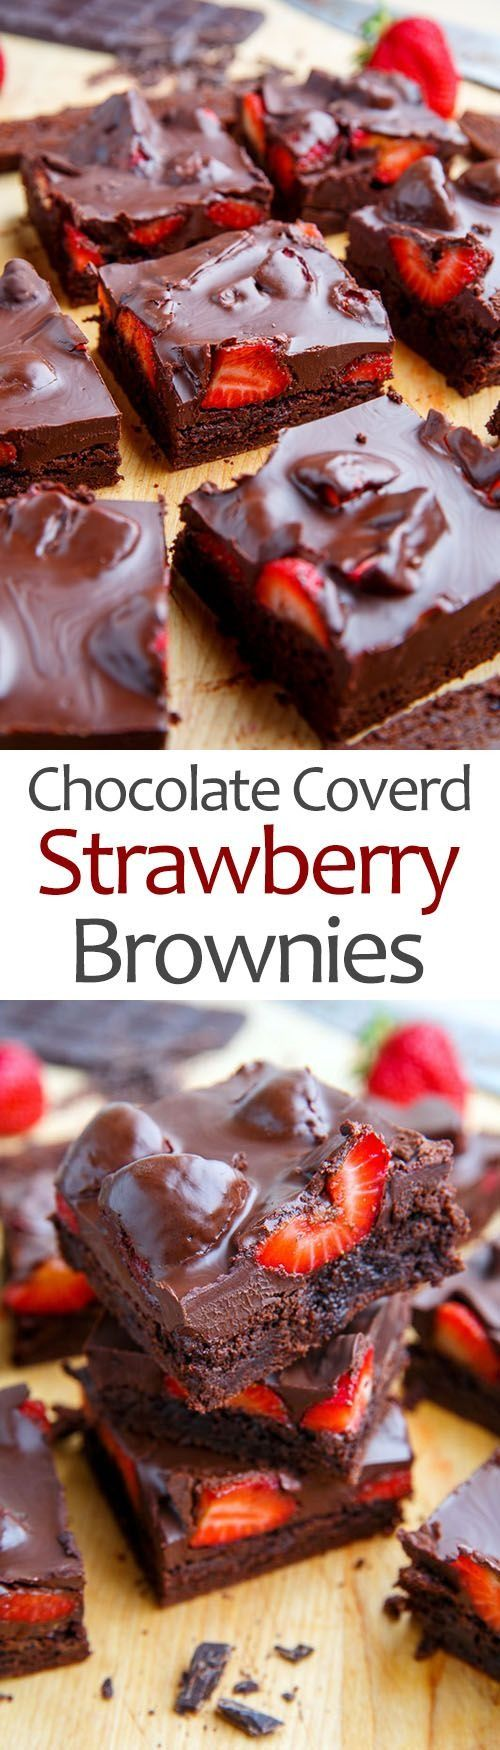 Best 20+ Chocolate covered strawberries ideas on Pinterest ...